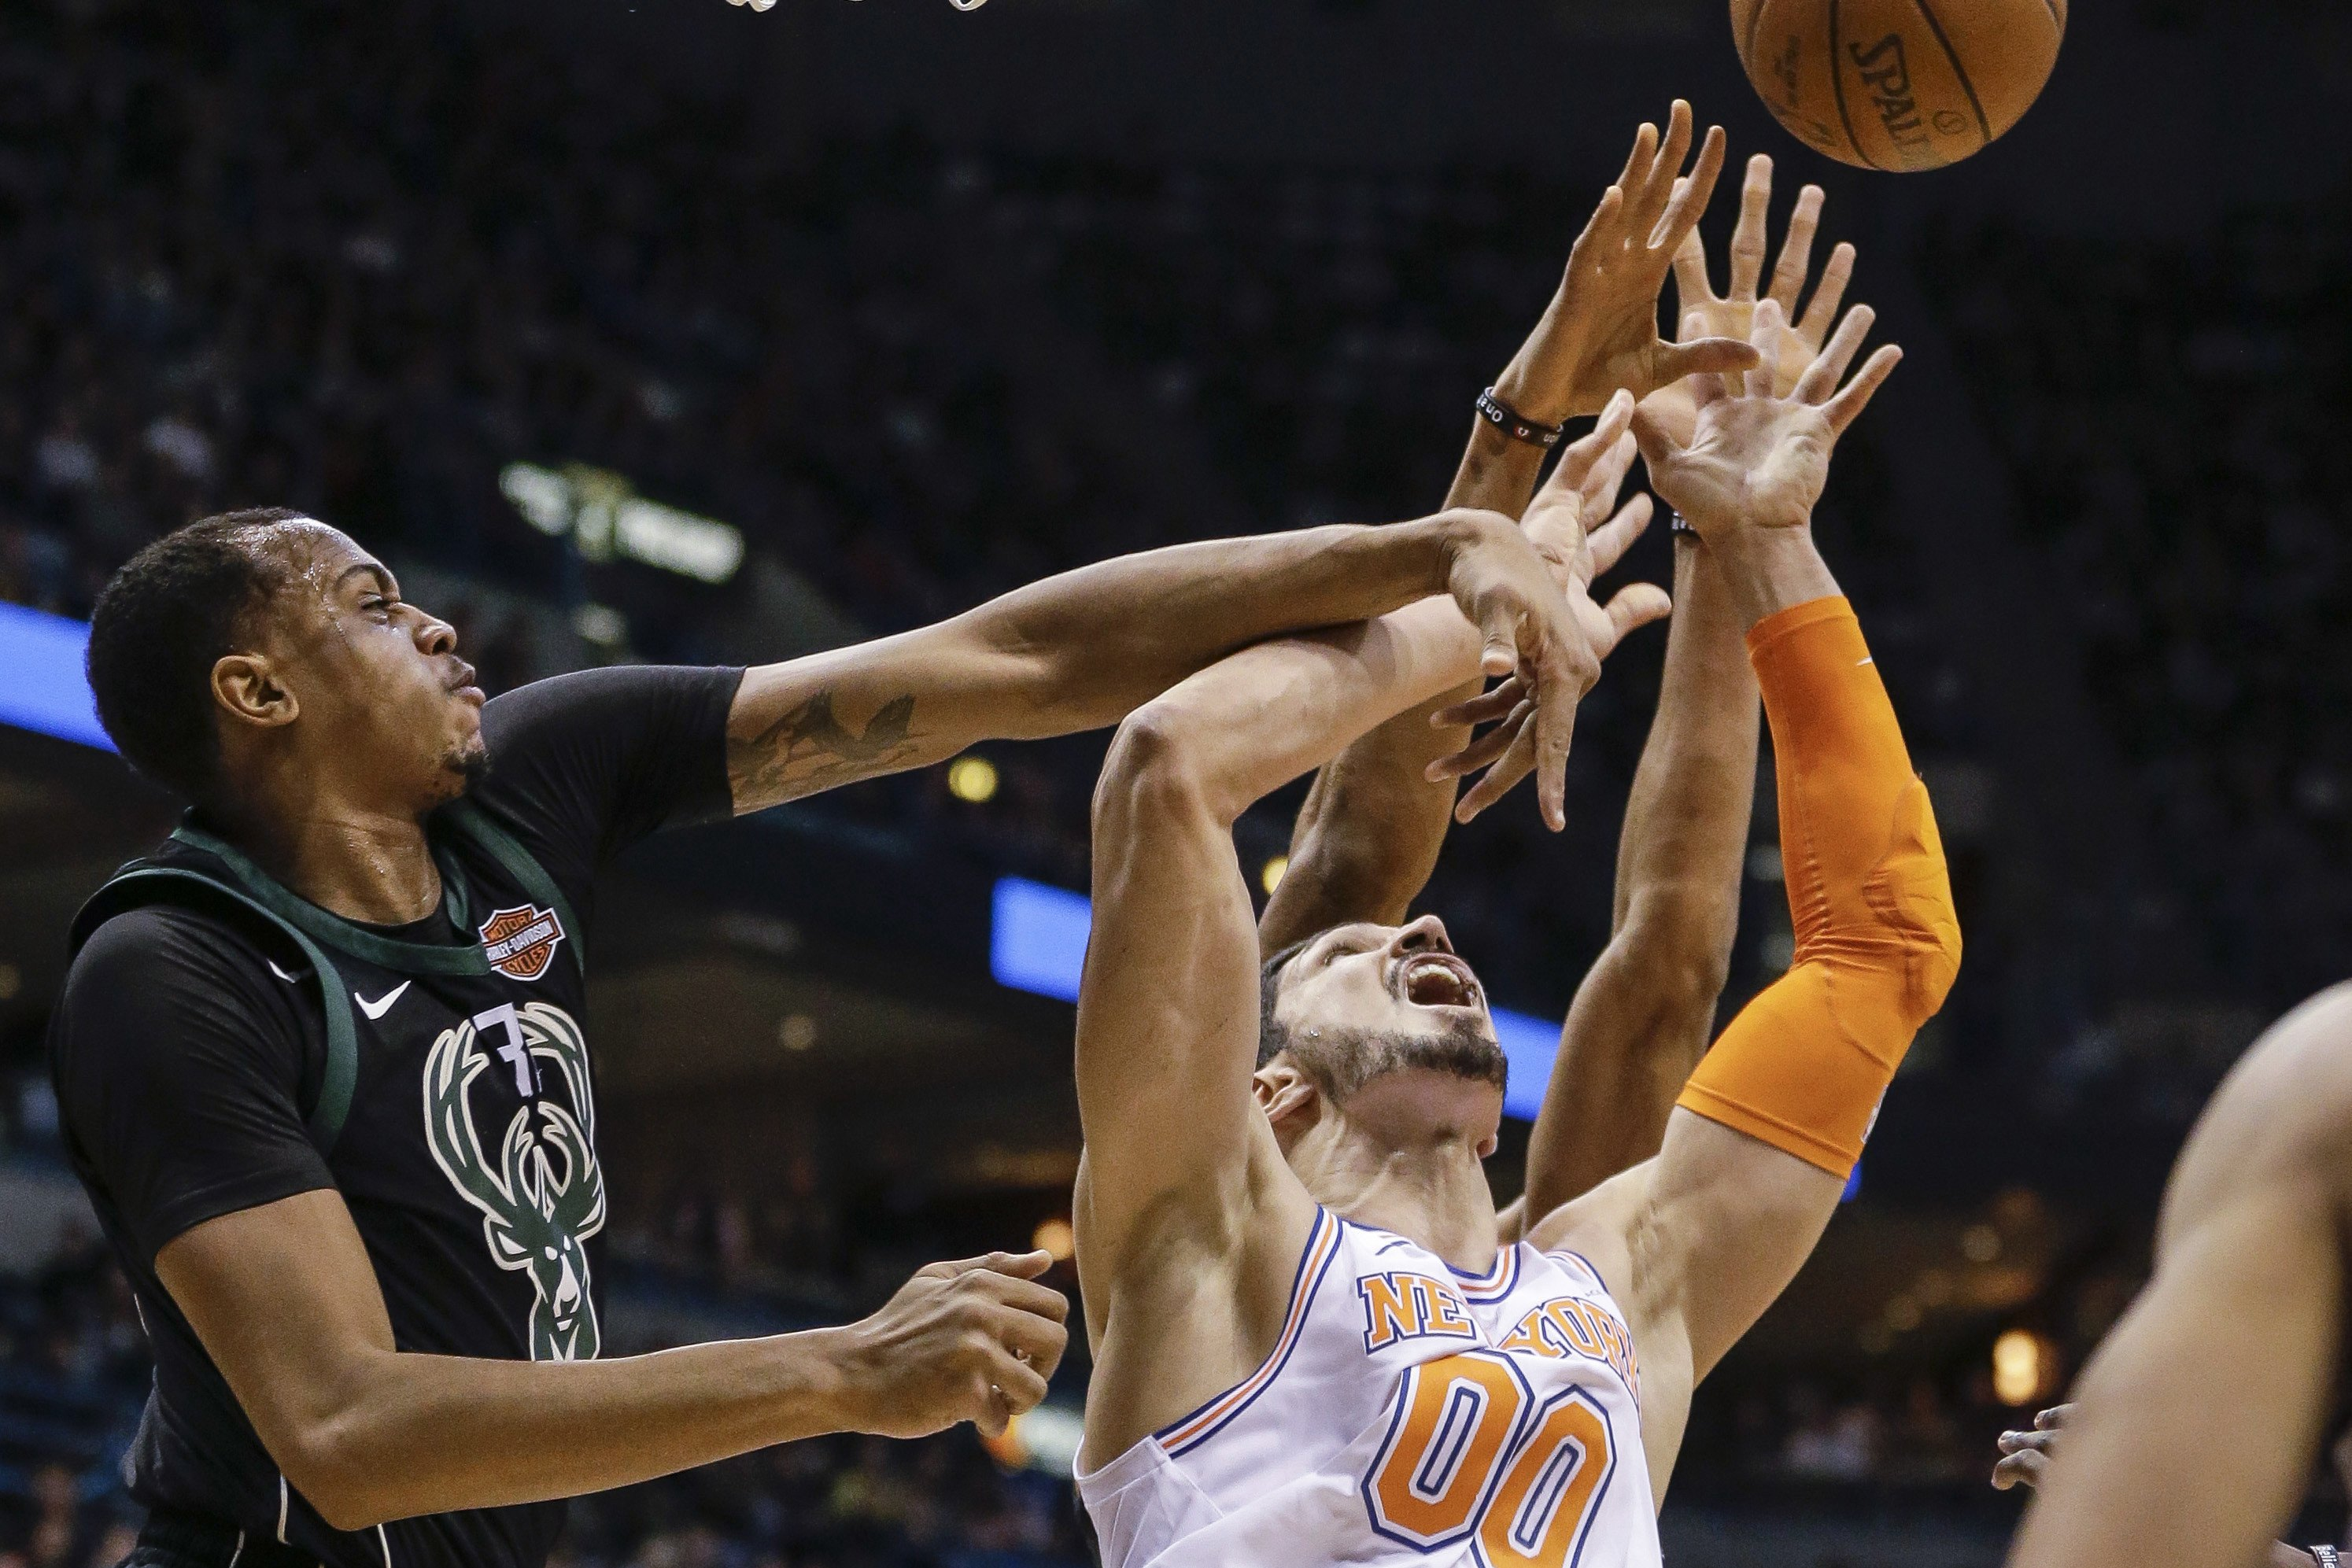 Trey Burke's absence a head-scratcher in another Knicks flameout